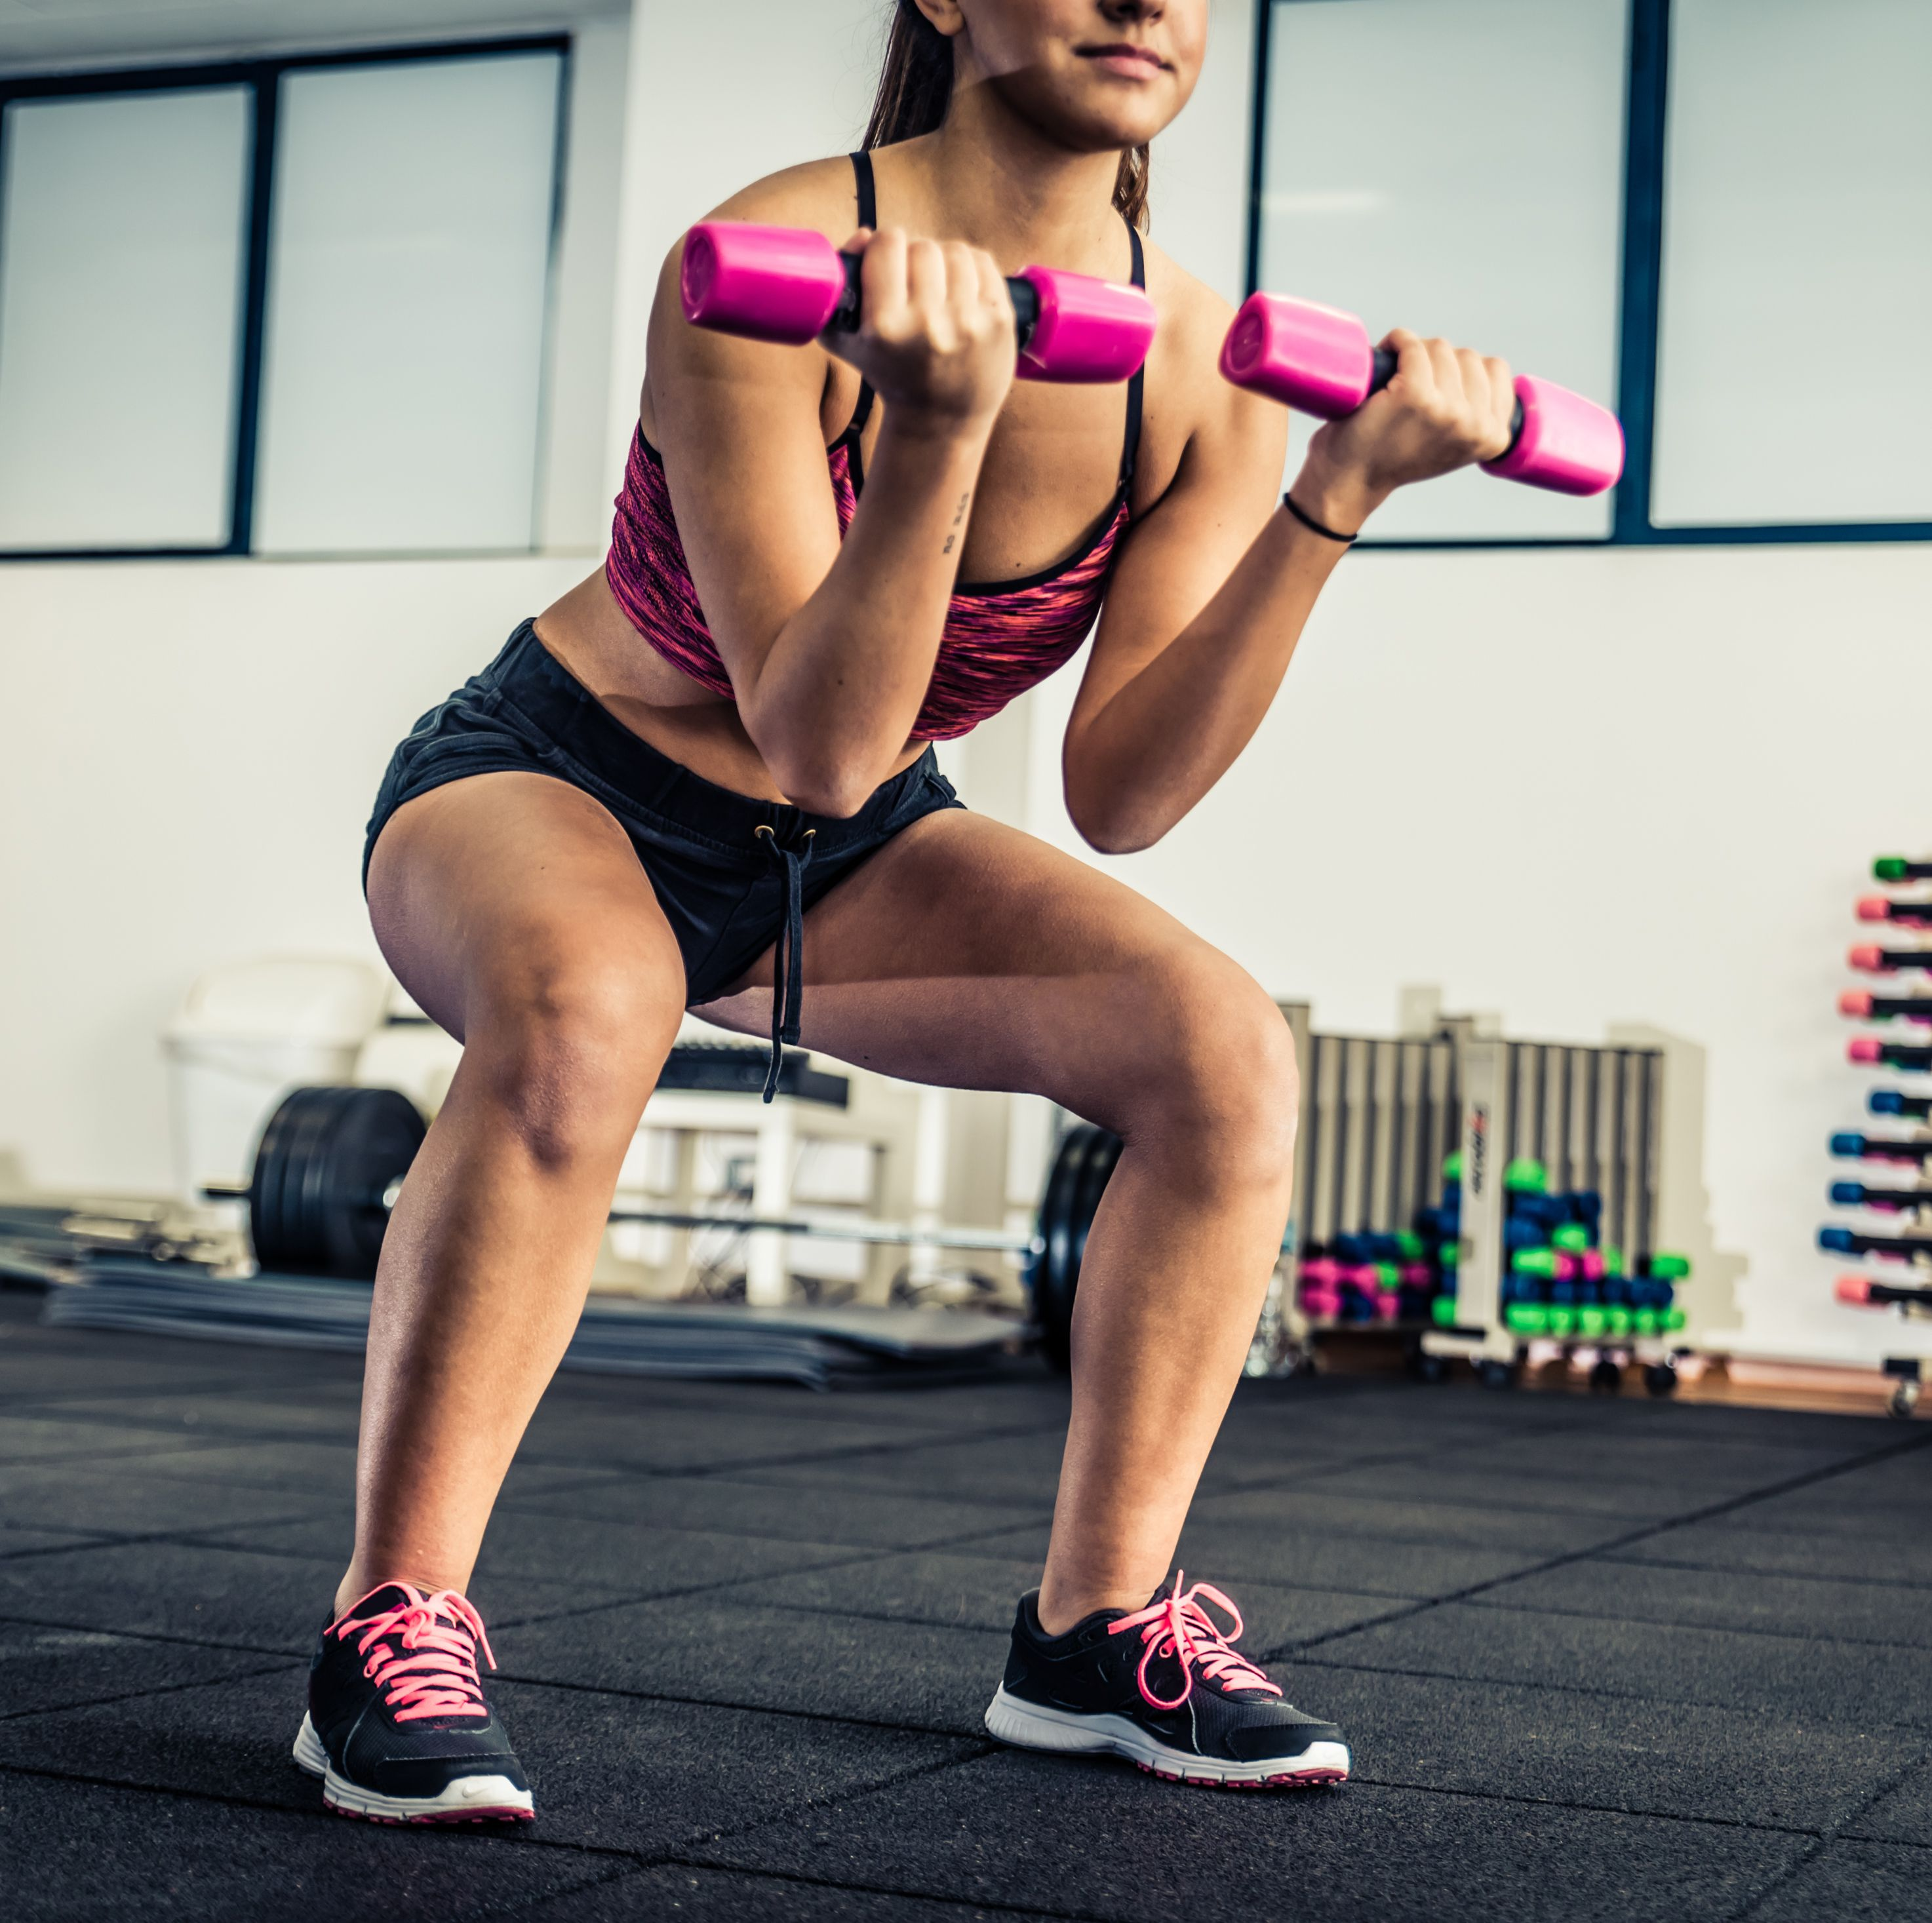 6 Compound Exercises That Cut Your Workout Time in Half